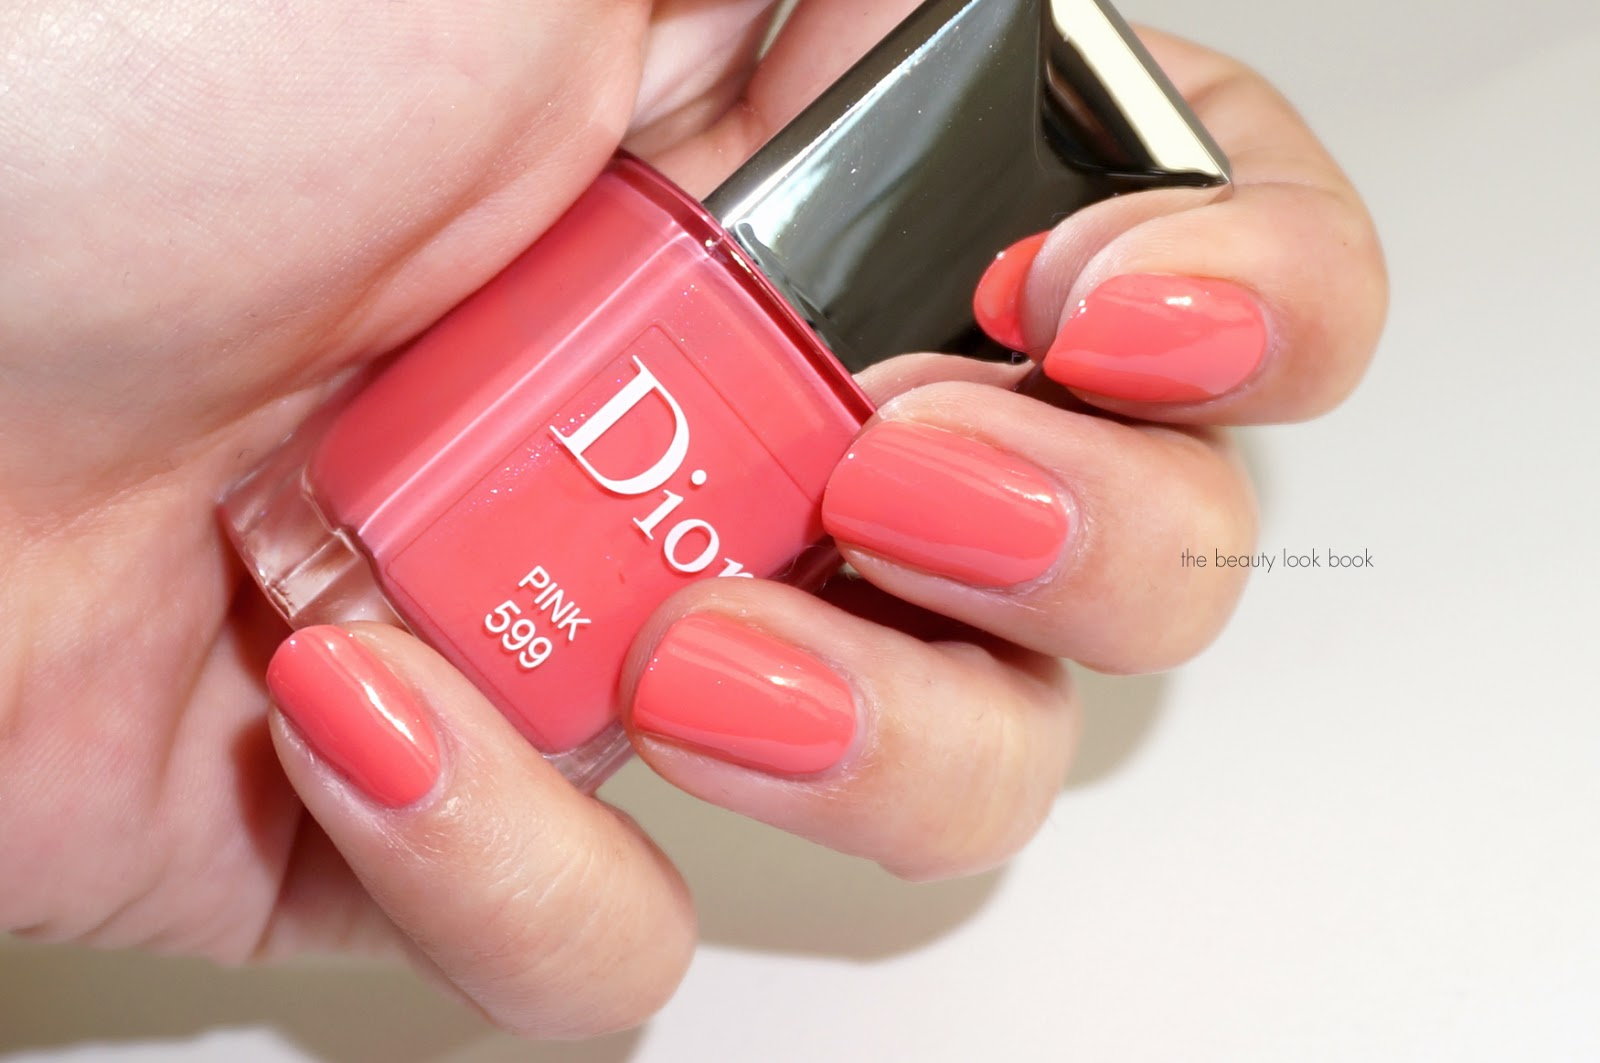 Dior Vernis In Rose 499 Pink 599 And Corail 899 The Beauty Look Book